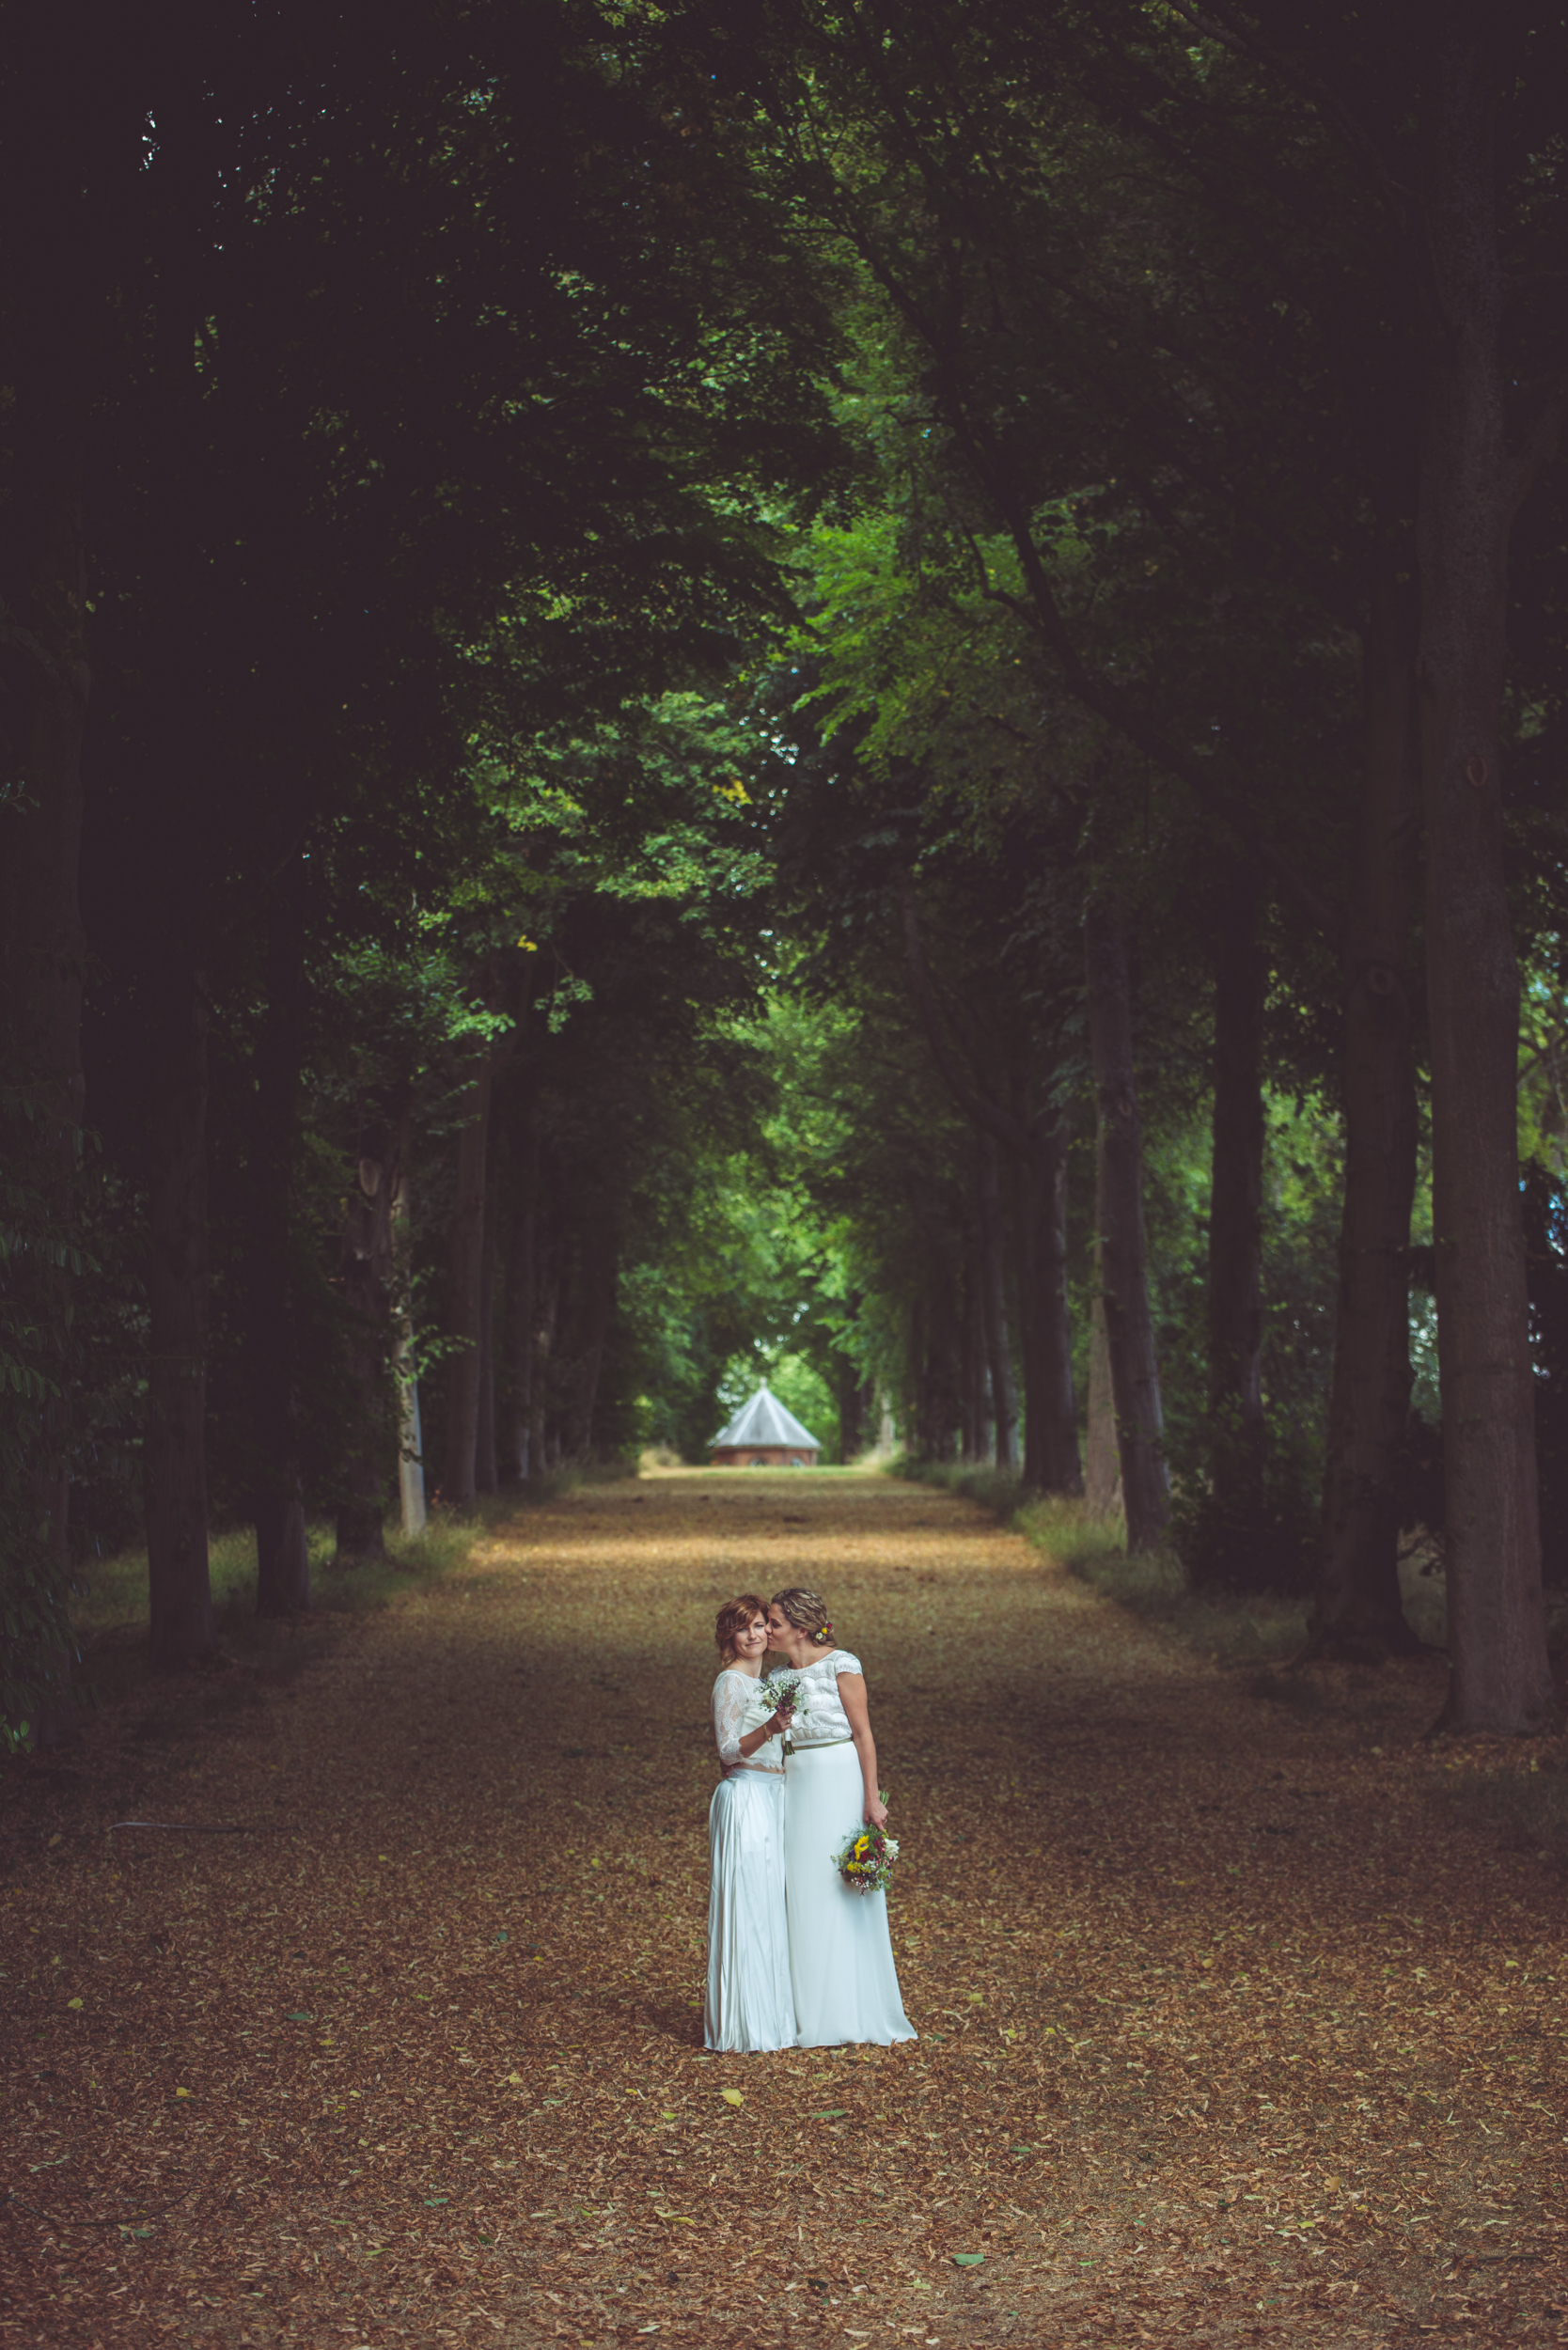 Hitchin_wedding_St_Pauls_Waldenbury_Royston_Wedding_Photographer-1.jpg